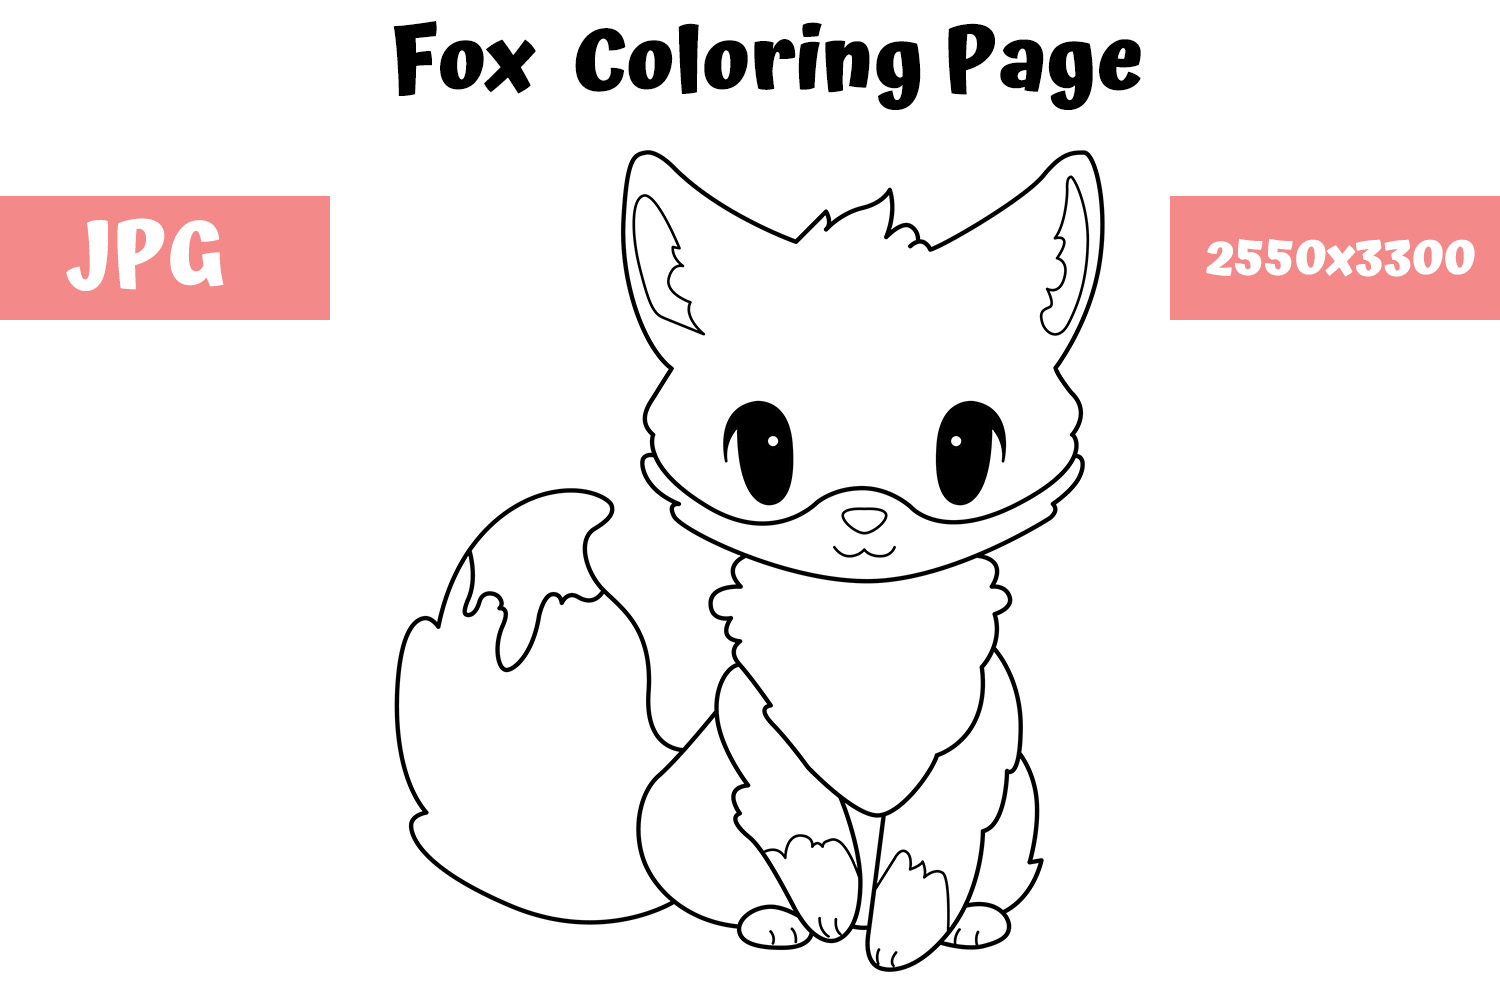 Top 25 Free Printable Fox Coloring Pages Online   1000x1500